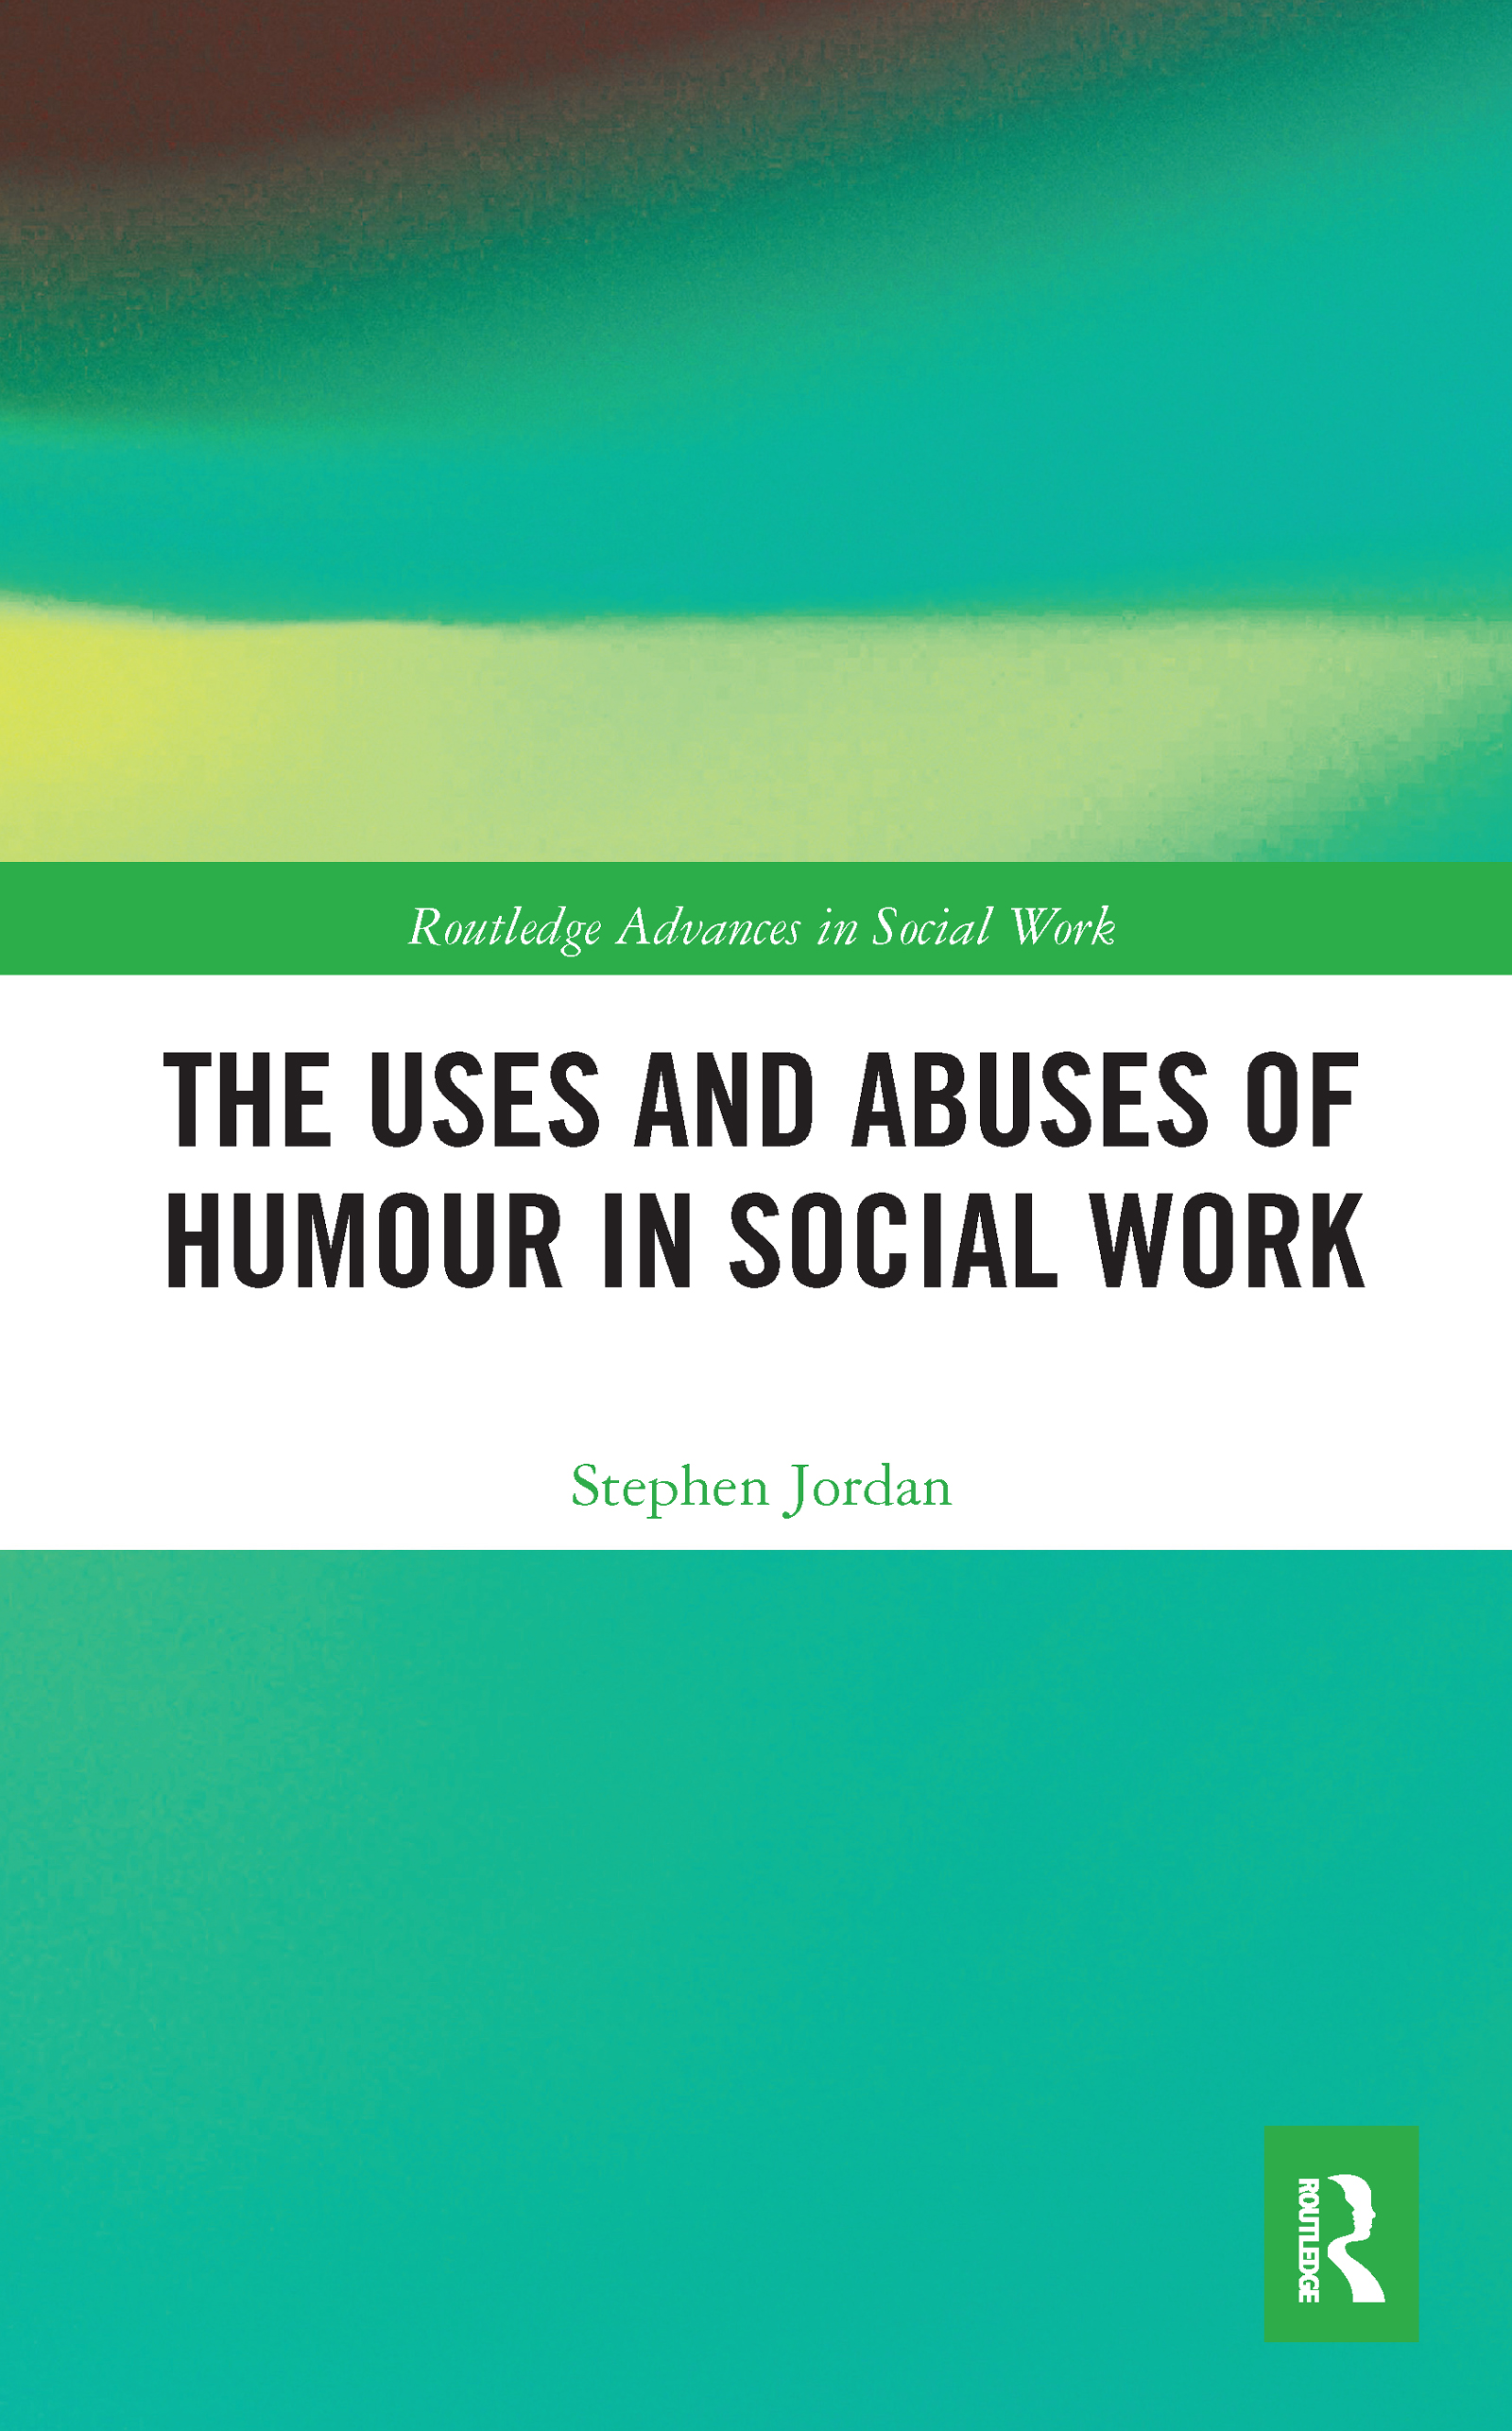 The Uses and Abuses of Humour in Social Work